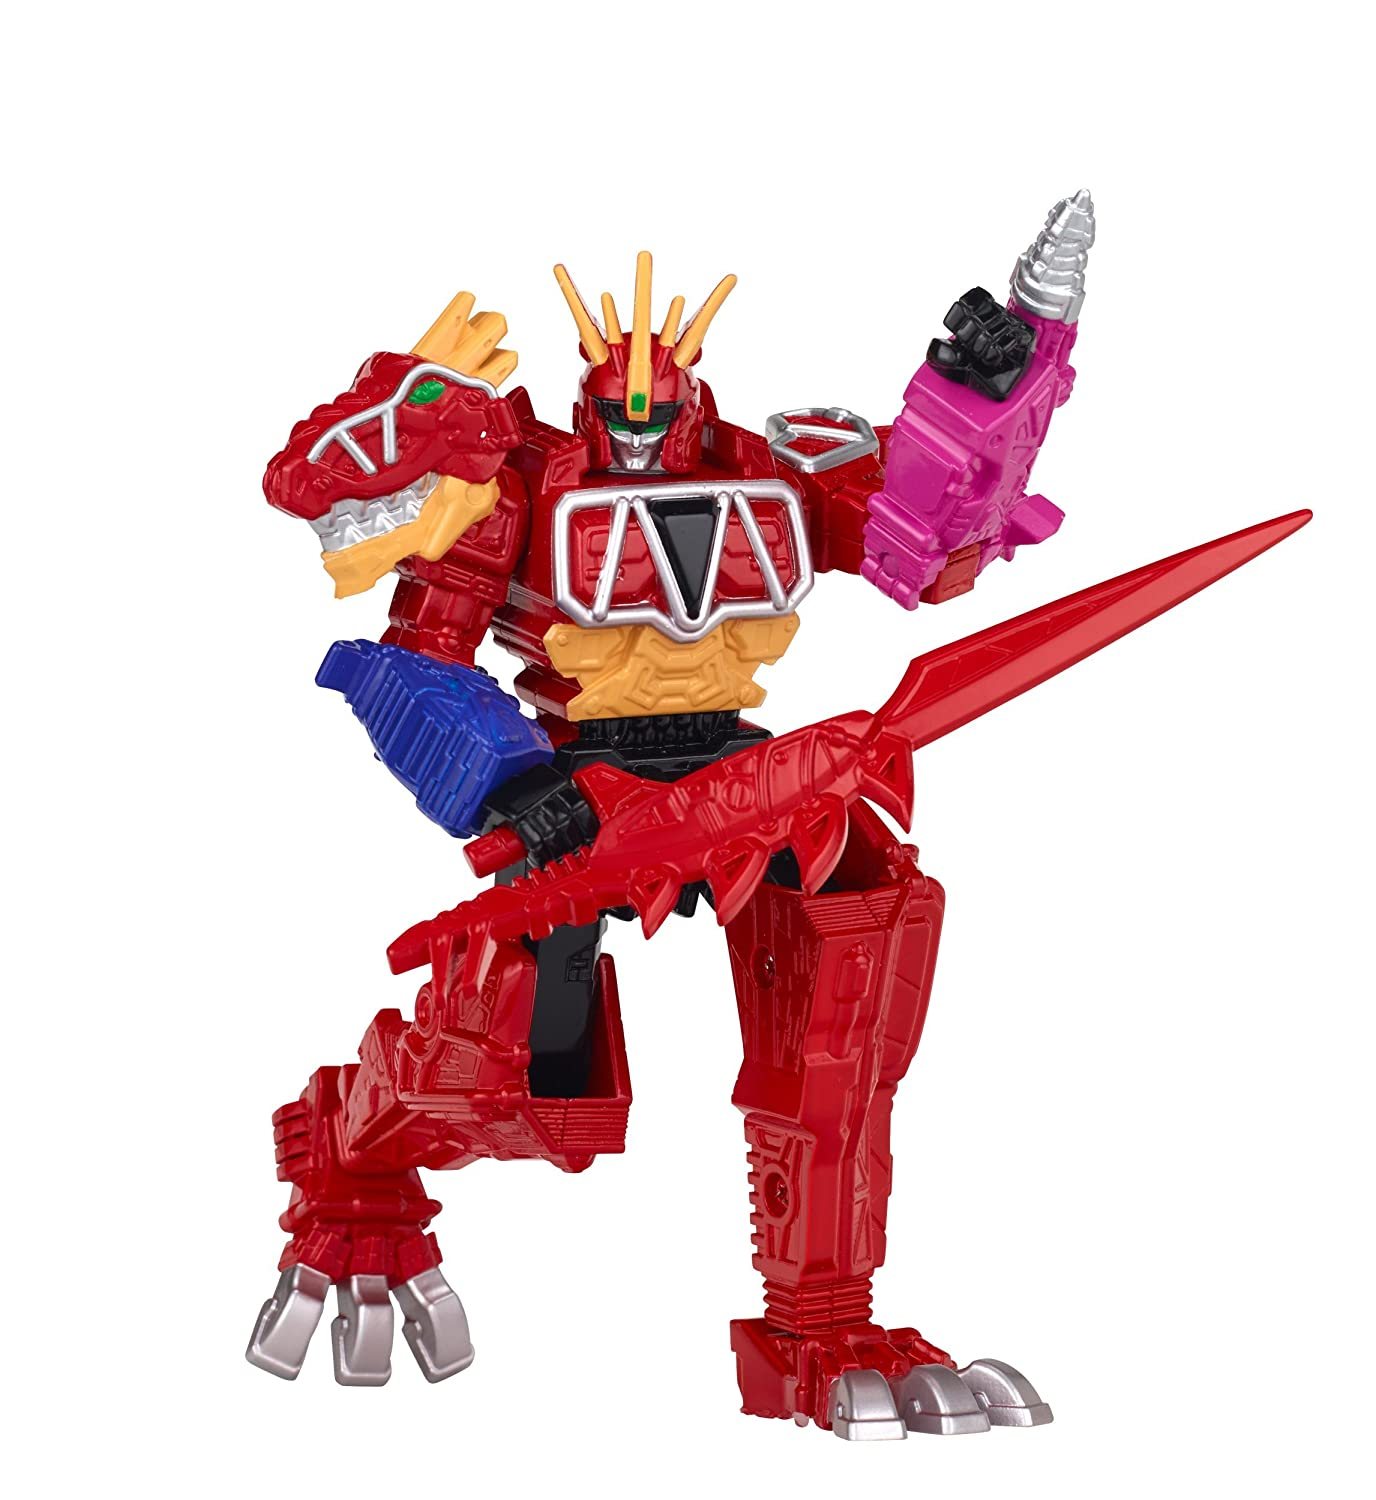 5 Ptera Charge Megazord Action Figure Bandai America Incorporated 43217 Power Rangers Dino Super Charge